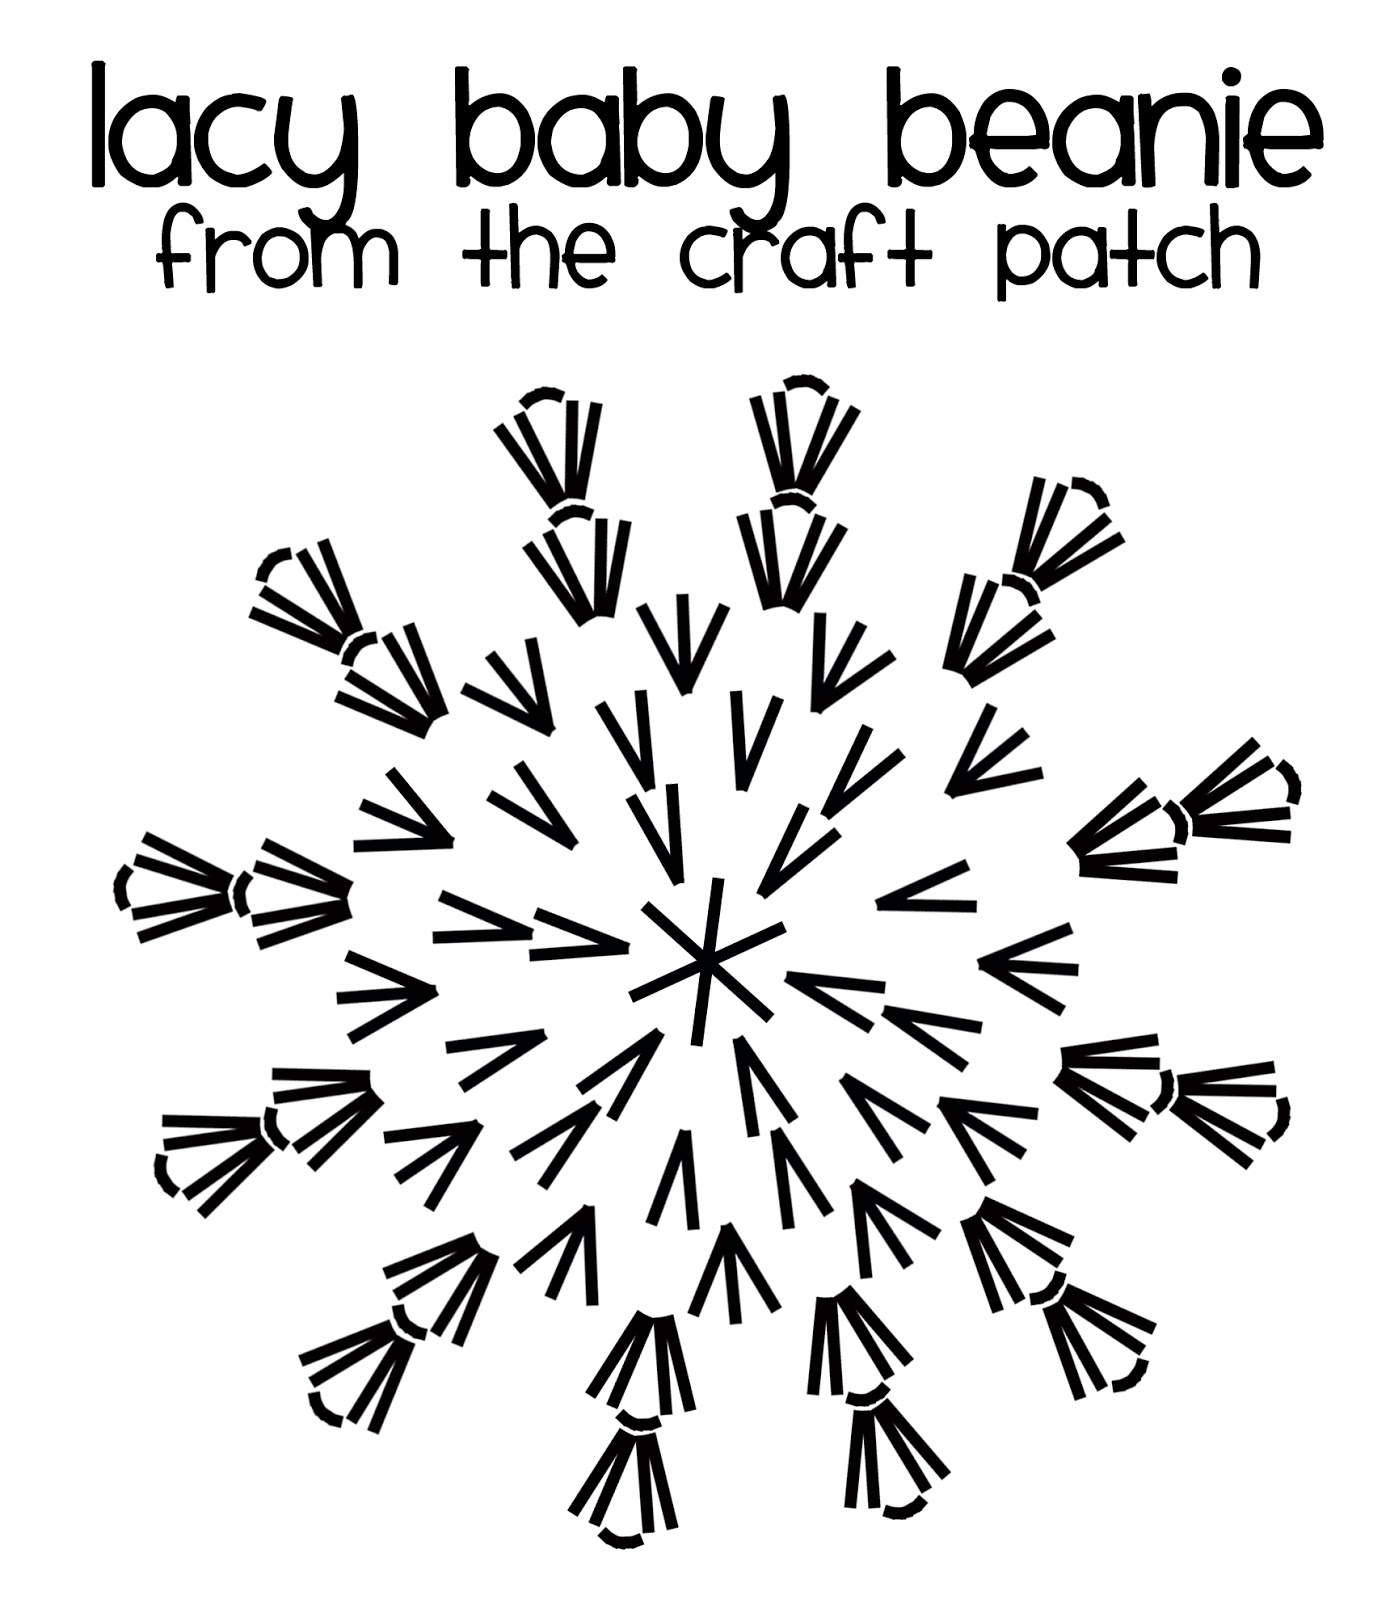 The Craft Patch Lacy Crochet Baby Beanie